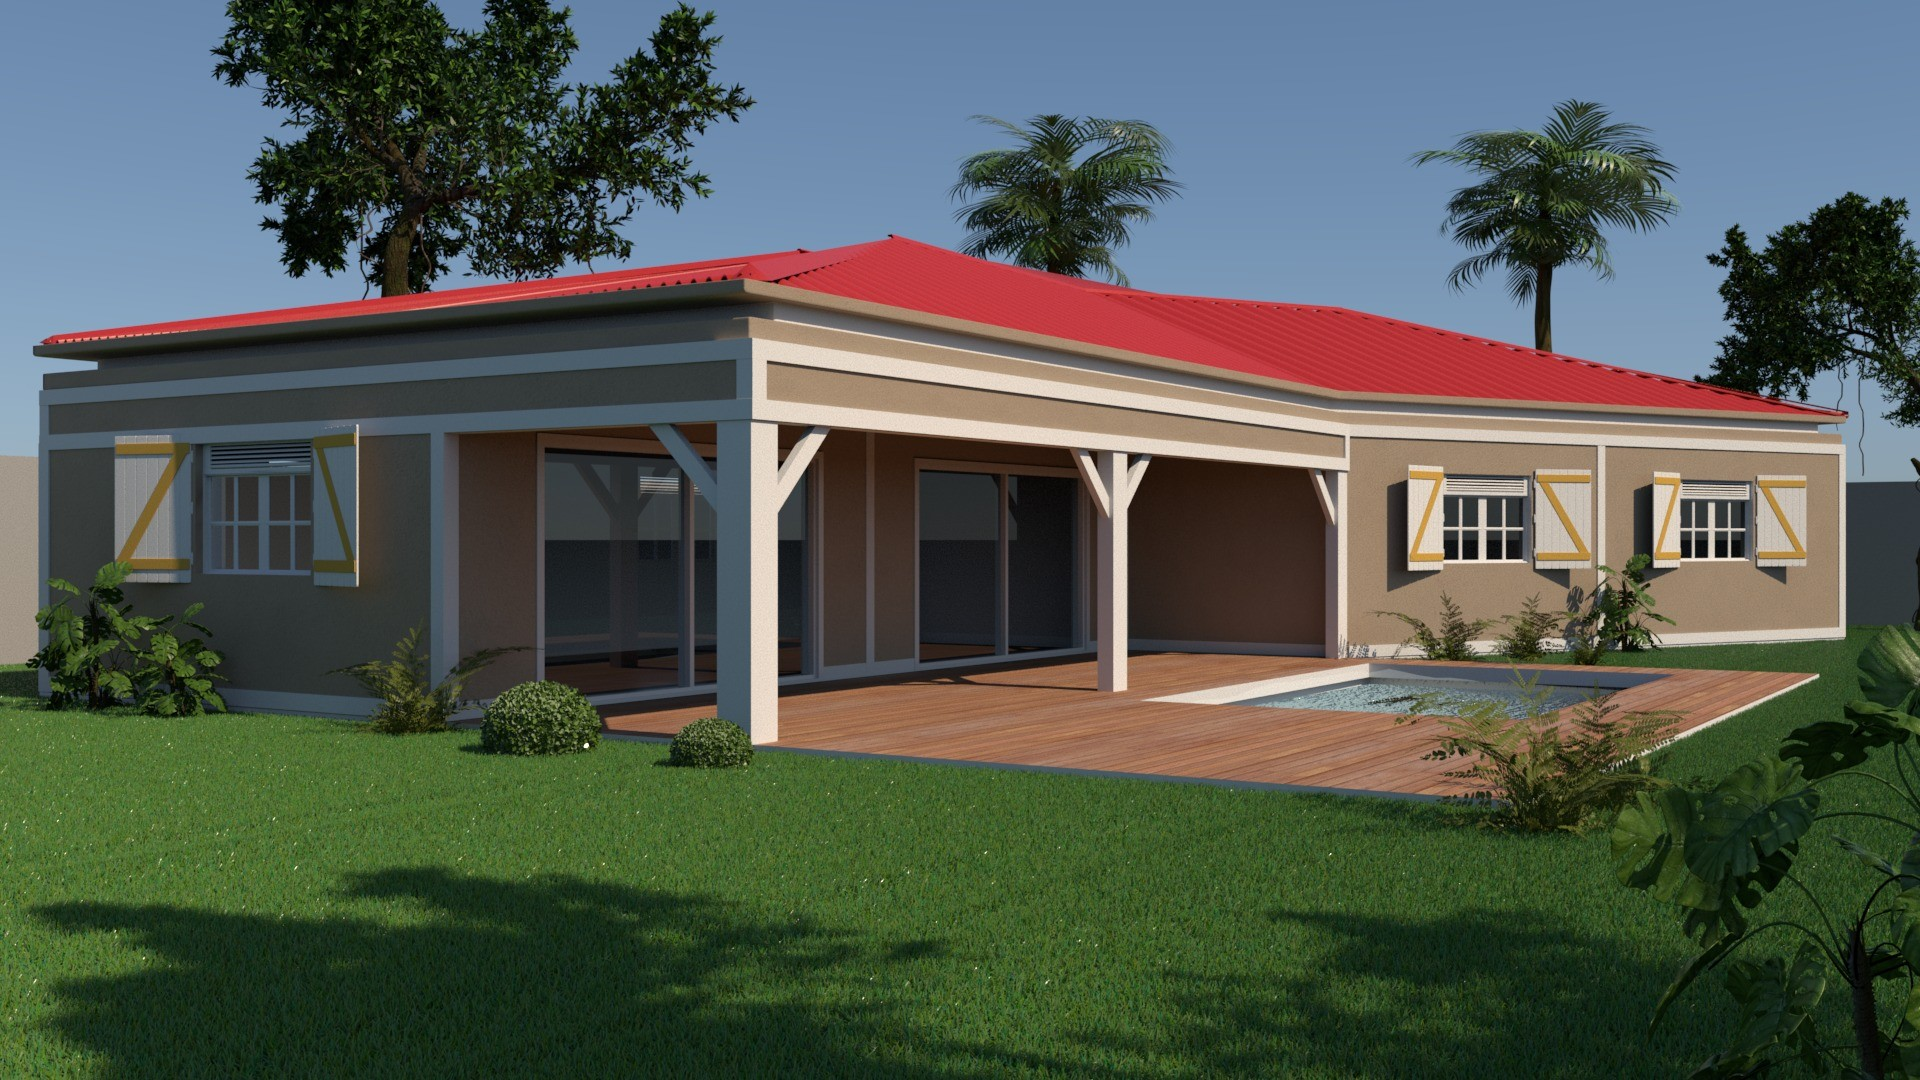 MAISON WEST INDIES ANTILLES MAISON DESIGN